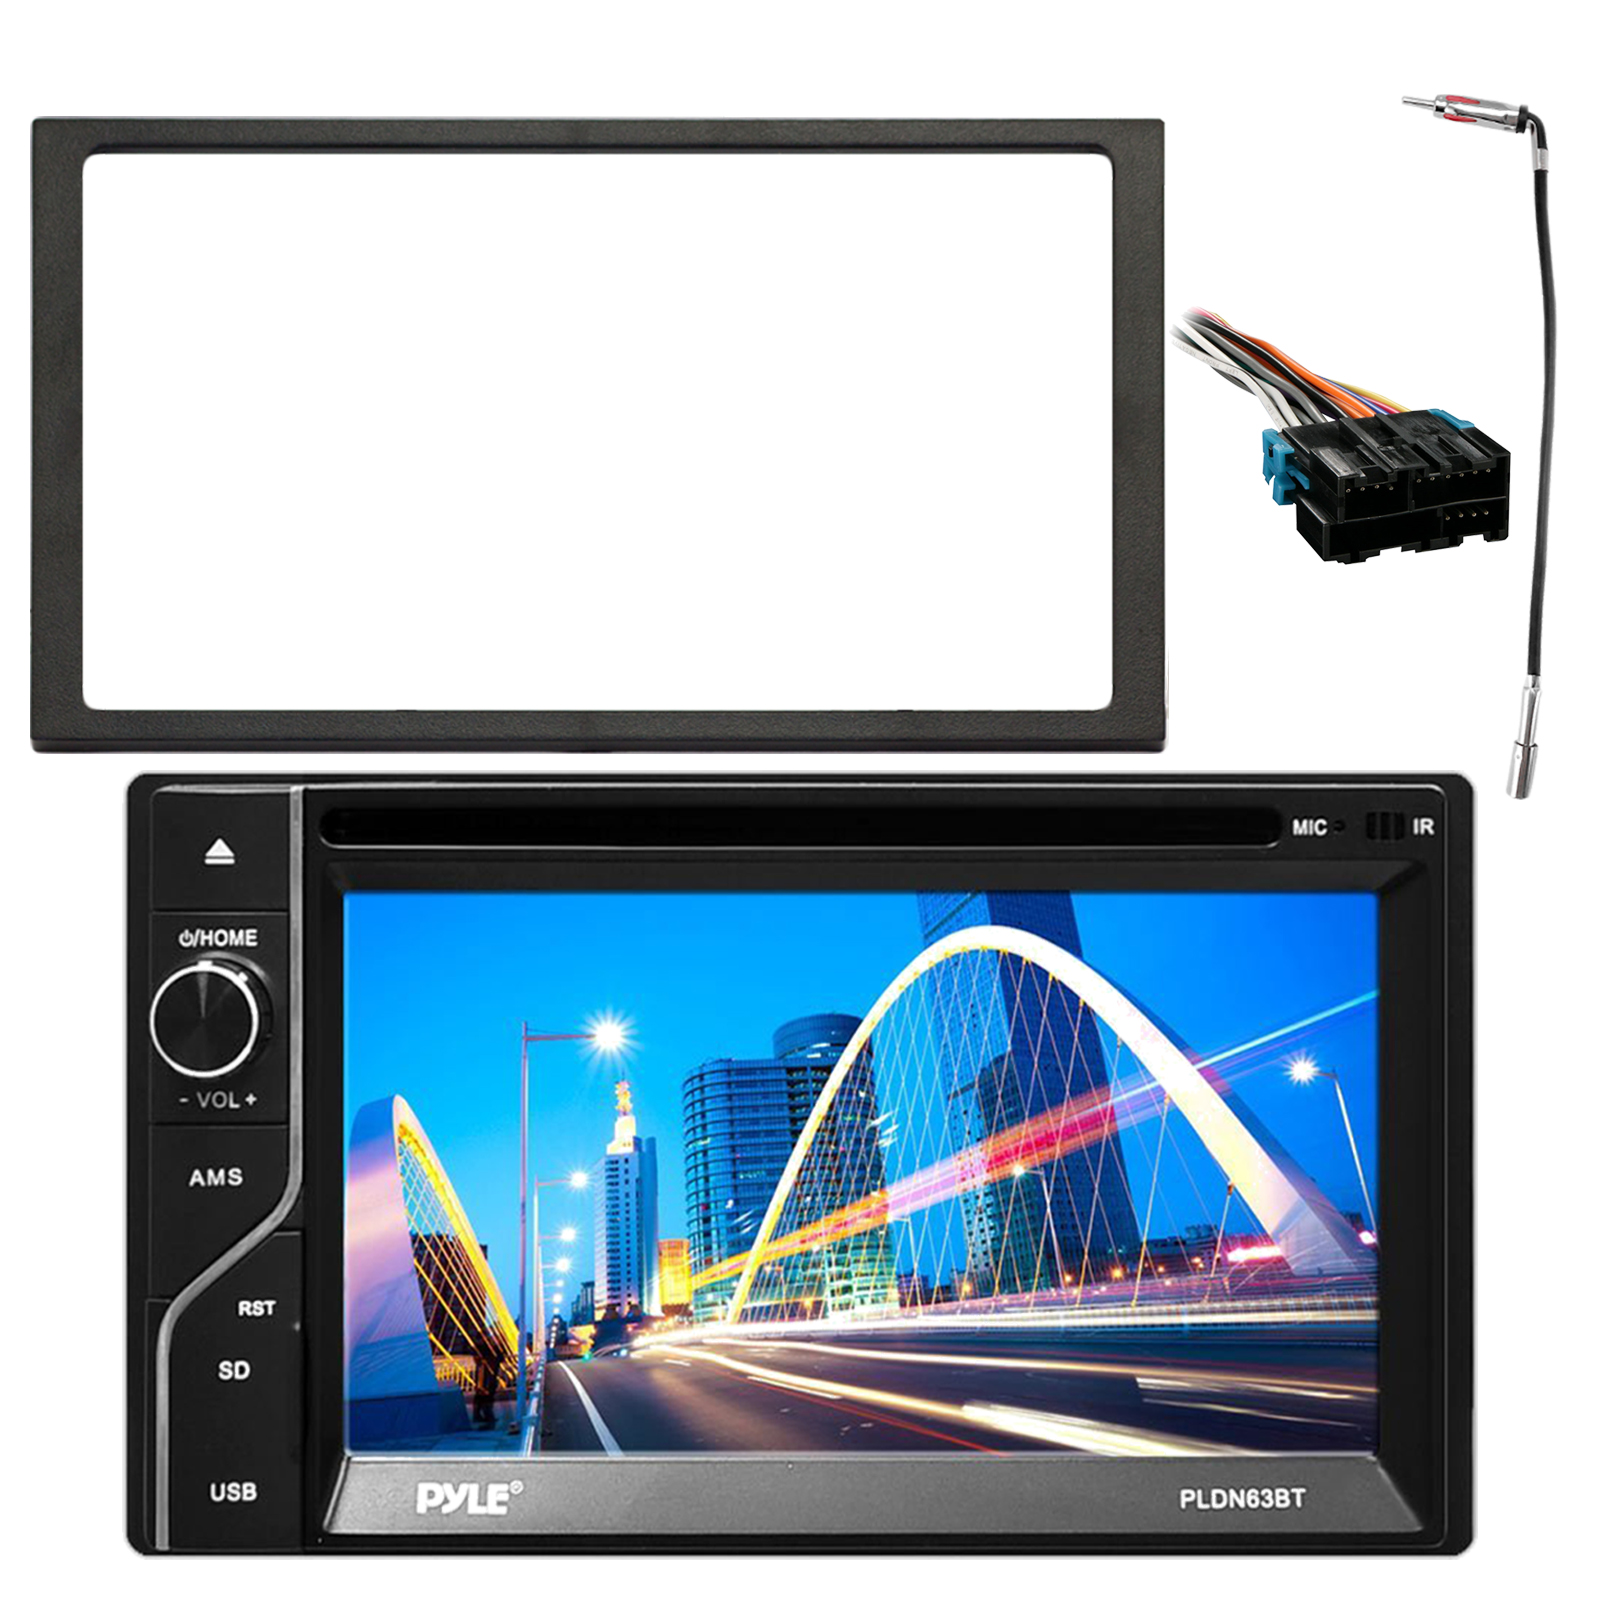 Pyle 6.5'' Touch Screen TFT/LCD Monitor MP3/USB AM/FM Bluetooth Receiver, Enrock Double DIN Installation Dash Kit, Metra Radio Wiring Harness For 1988-2005 GM Vehicles, Enrock Antenna Adapter